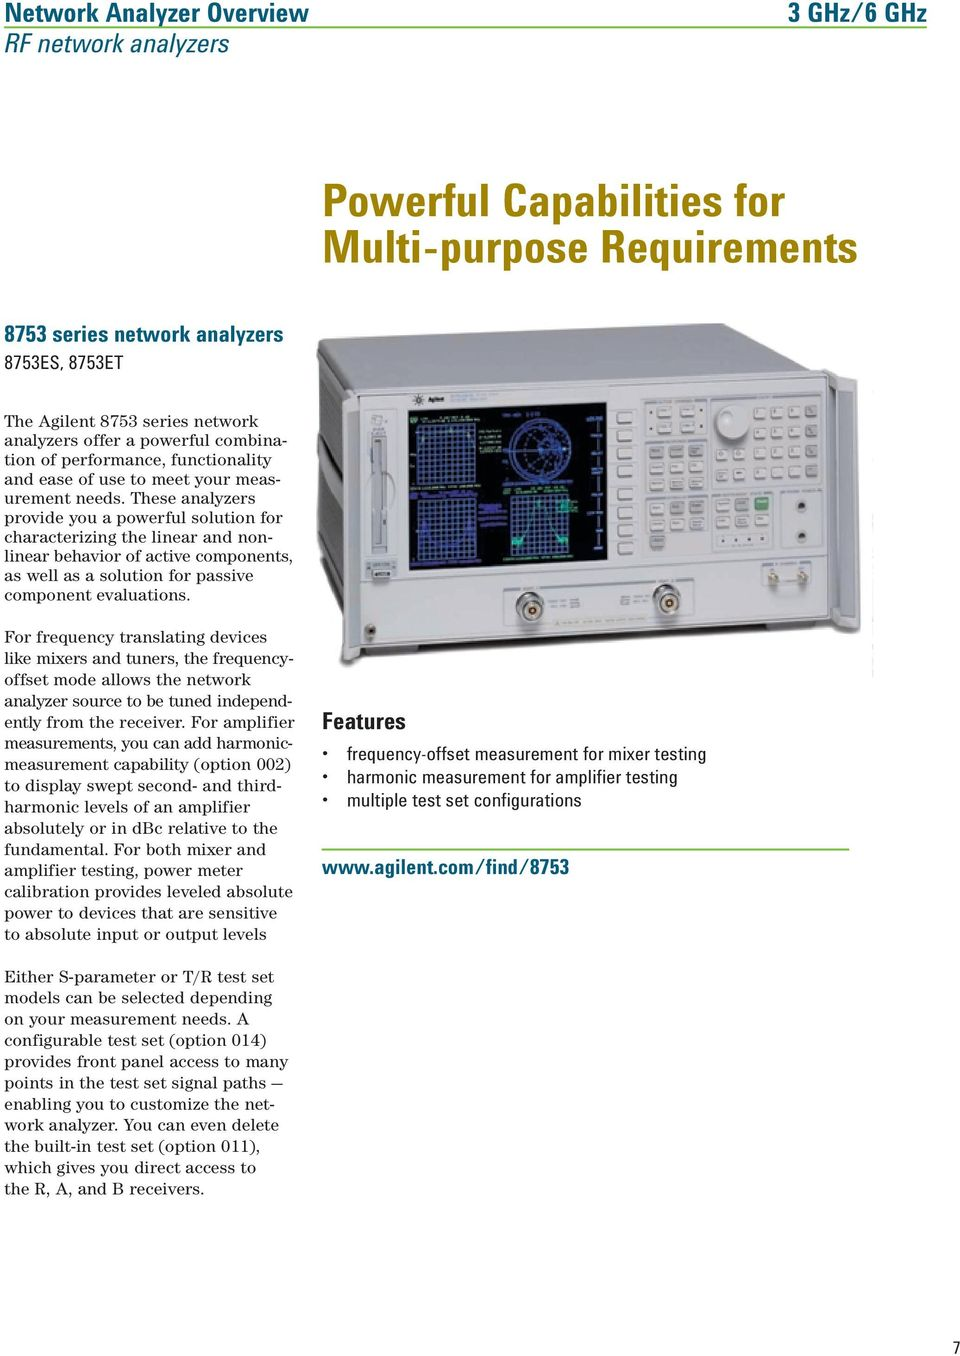 Agilent Network Analyzer Selection Guide Pdf Rf Multi Measurement Signal These Analyzers Provide You A Powerful Solution For Characterizing The Linear And Nonlinear Behavior Of Active